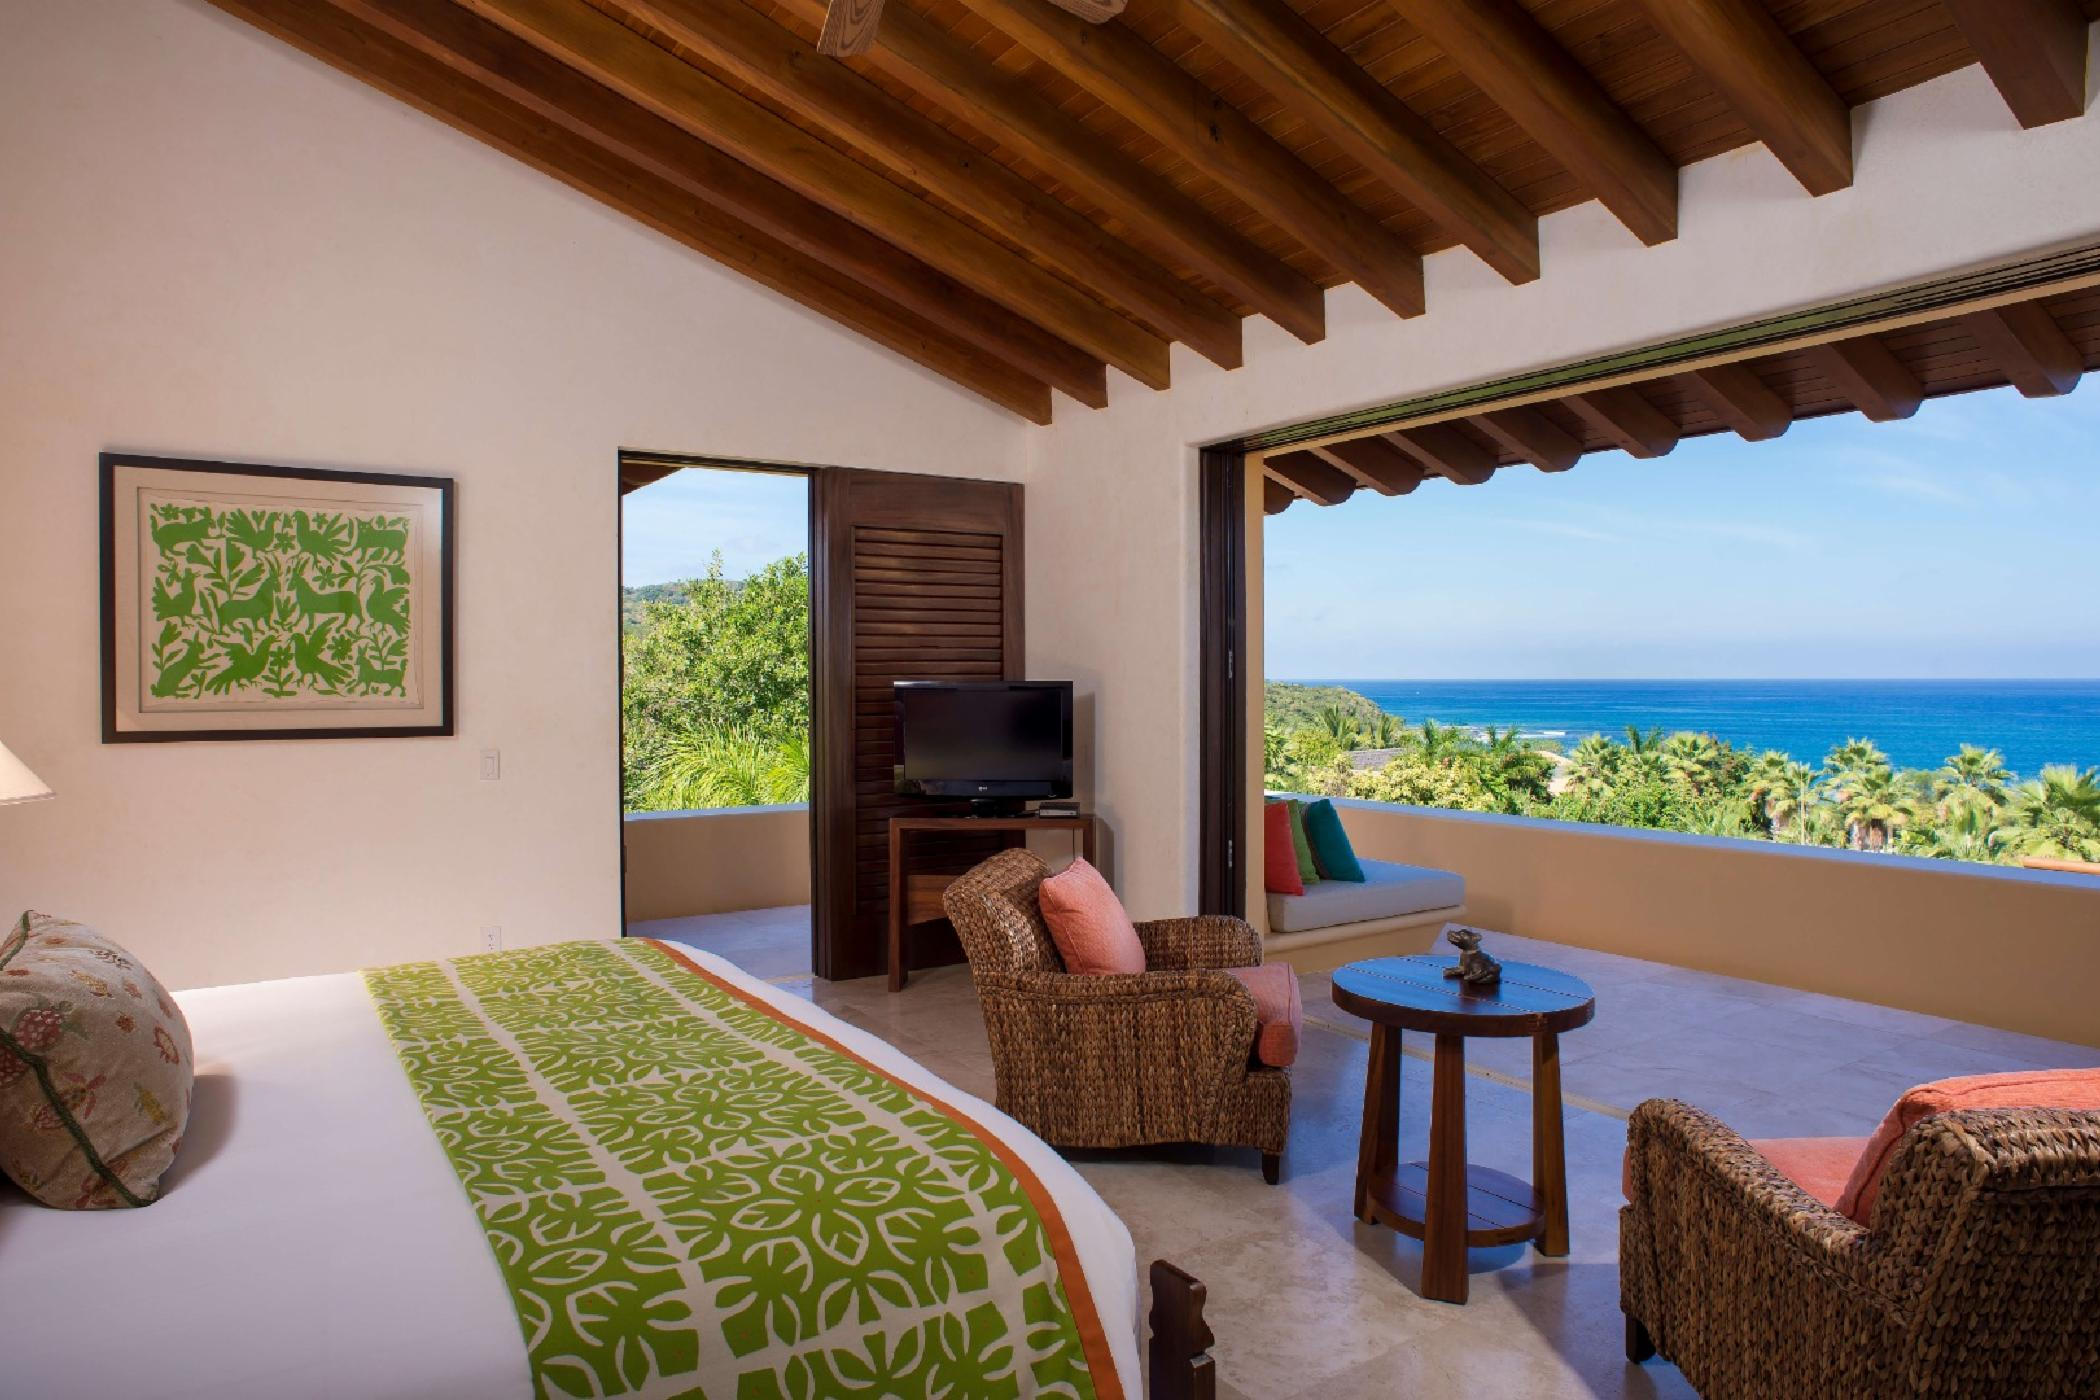 The master suite boasts uninterrupted views of the bay.